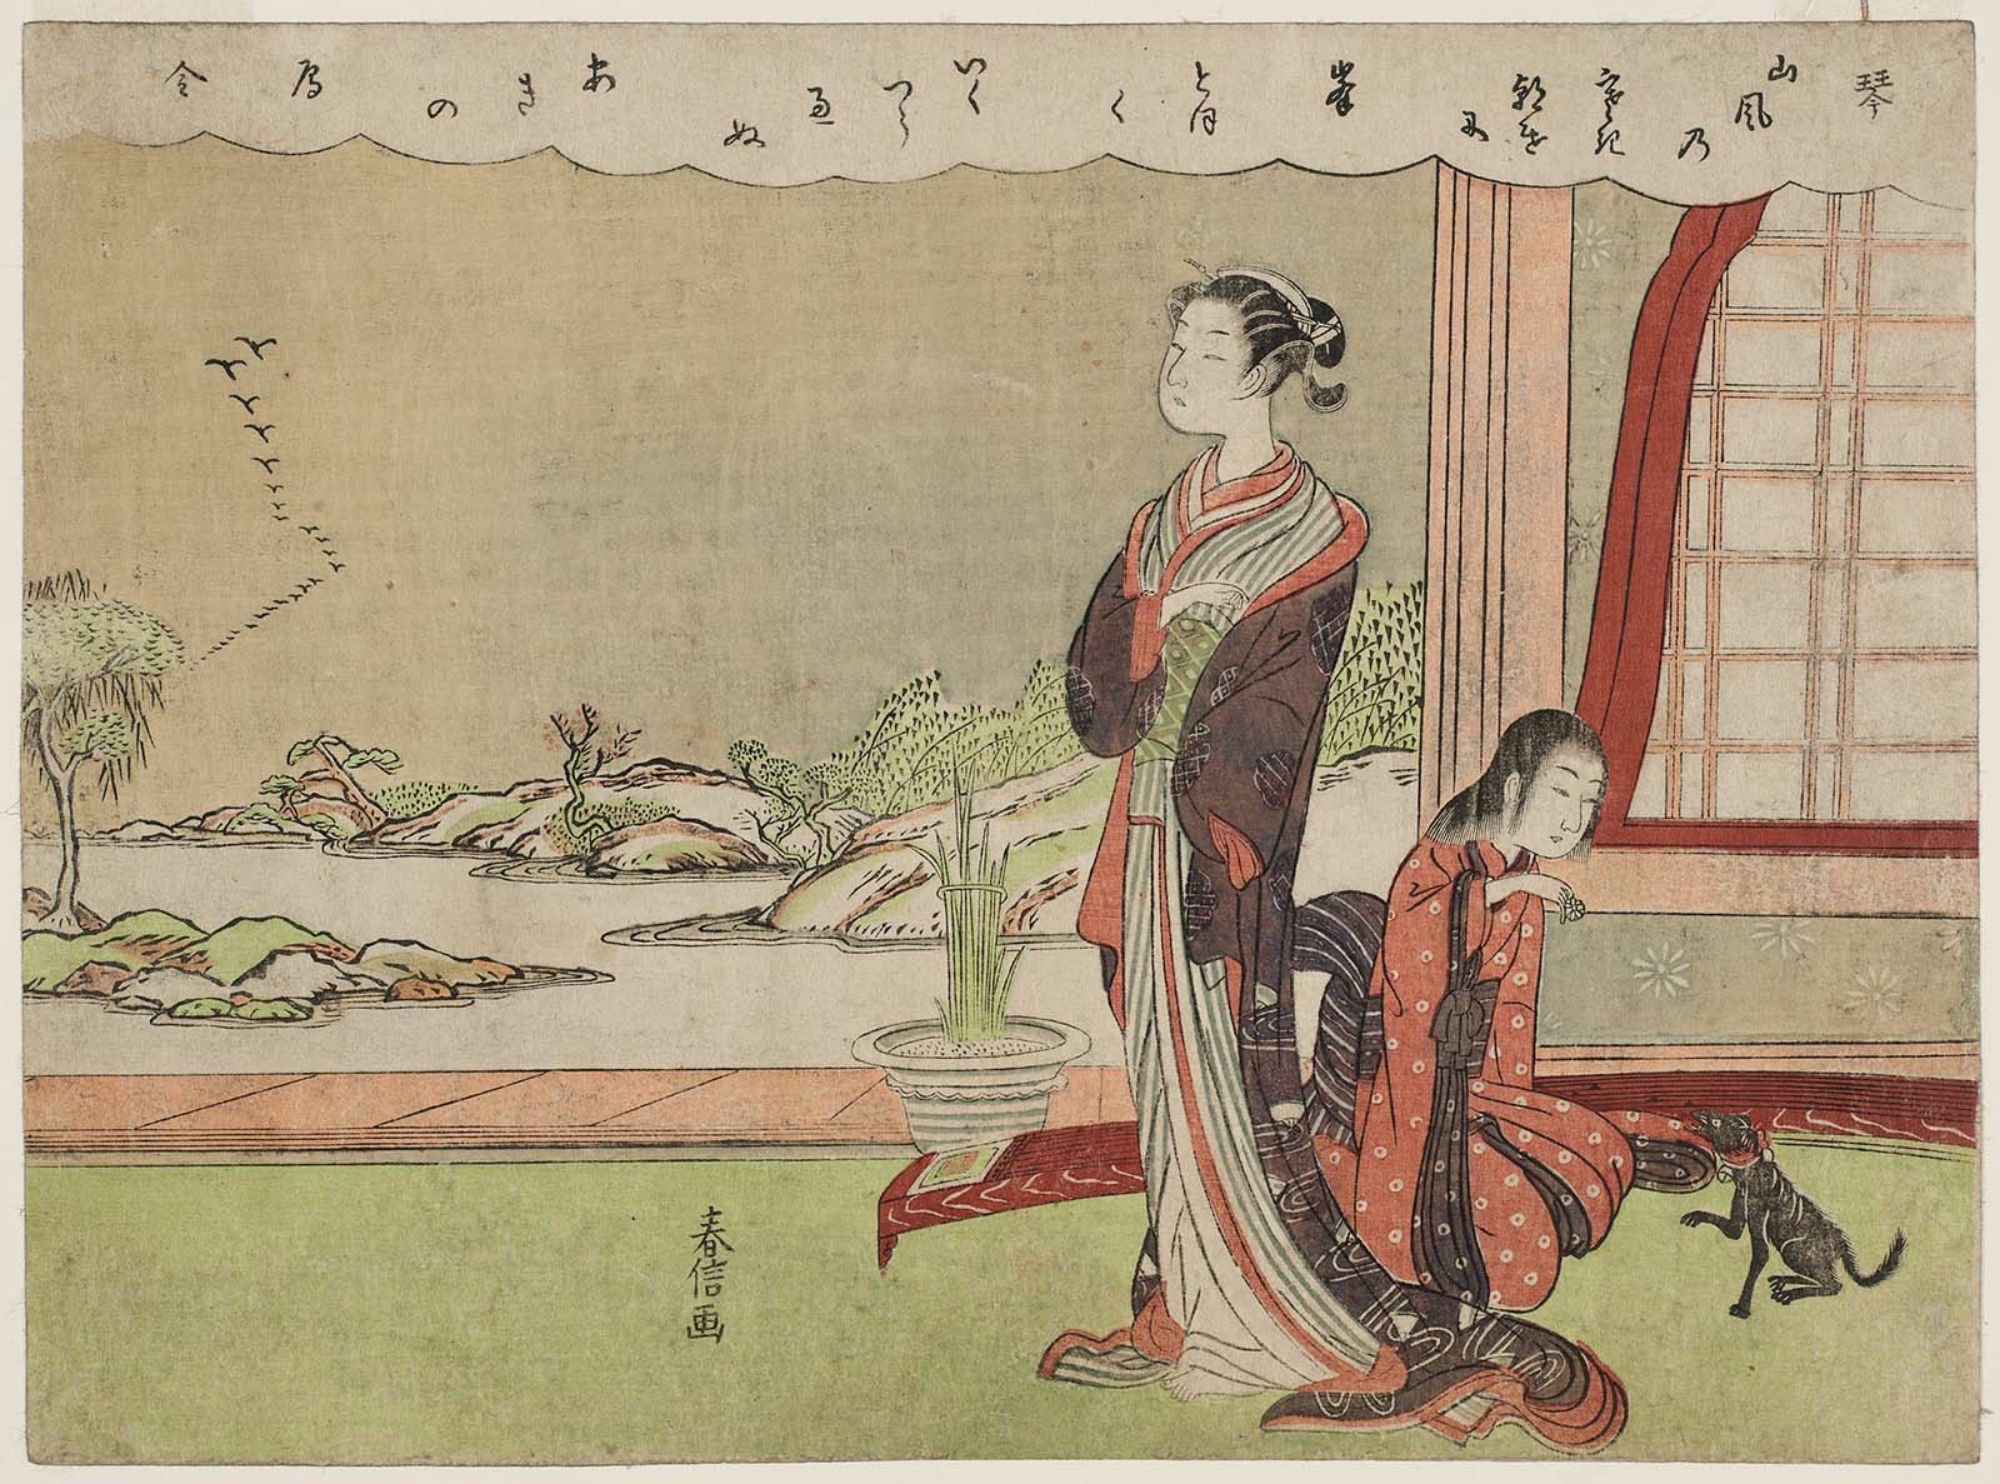 Koto (Kin), from an untitled series of the Four Accomplishments by Kokan